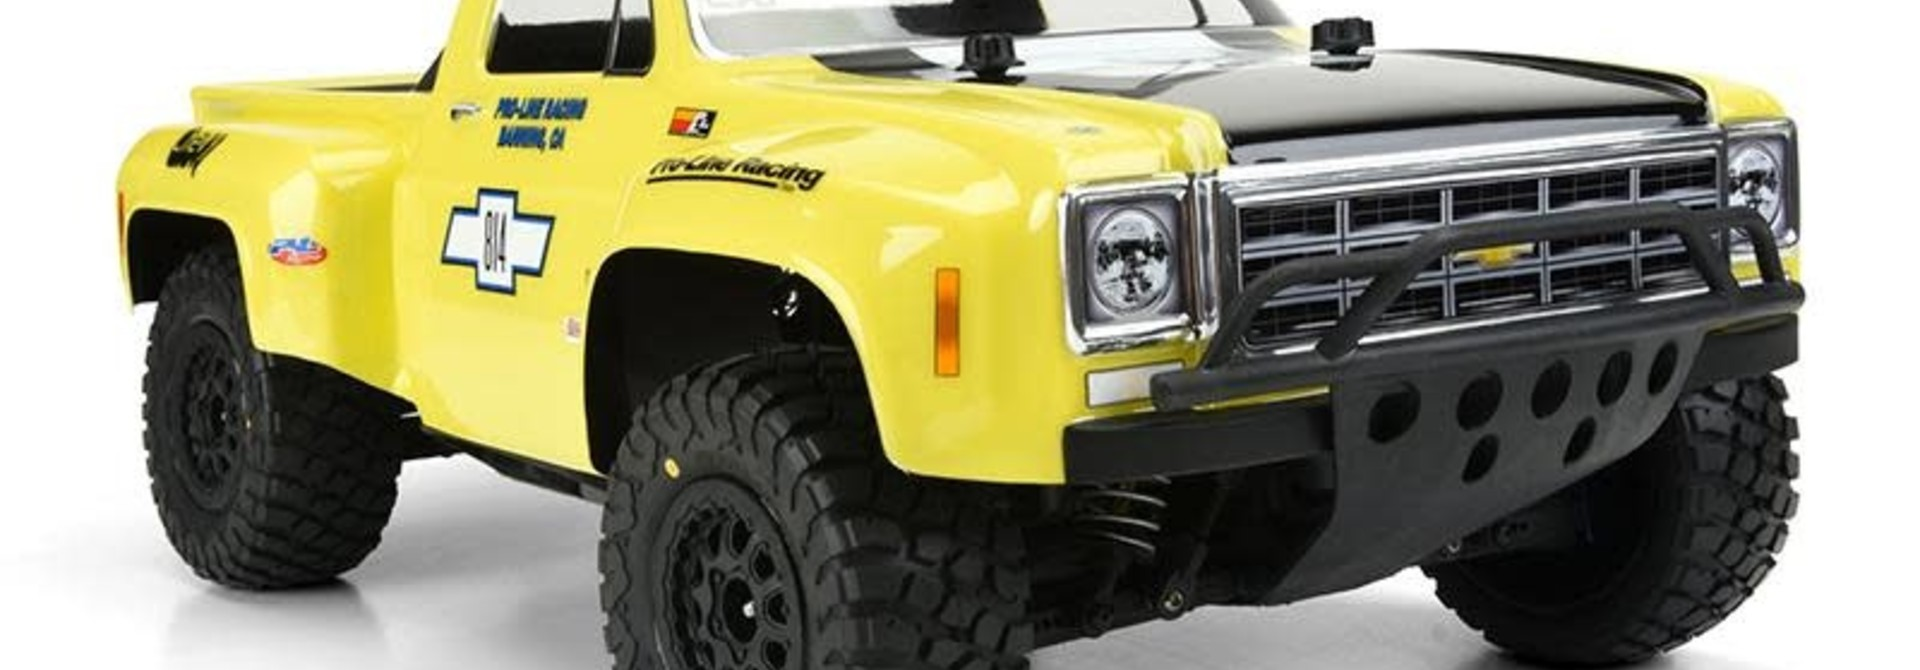 1978 Chevy C-10 Race Truck Clear Body for SC